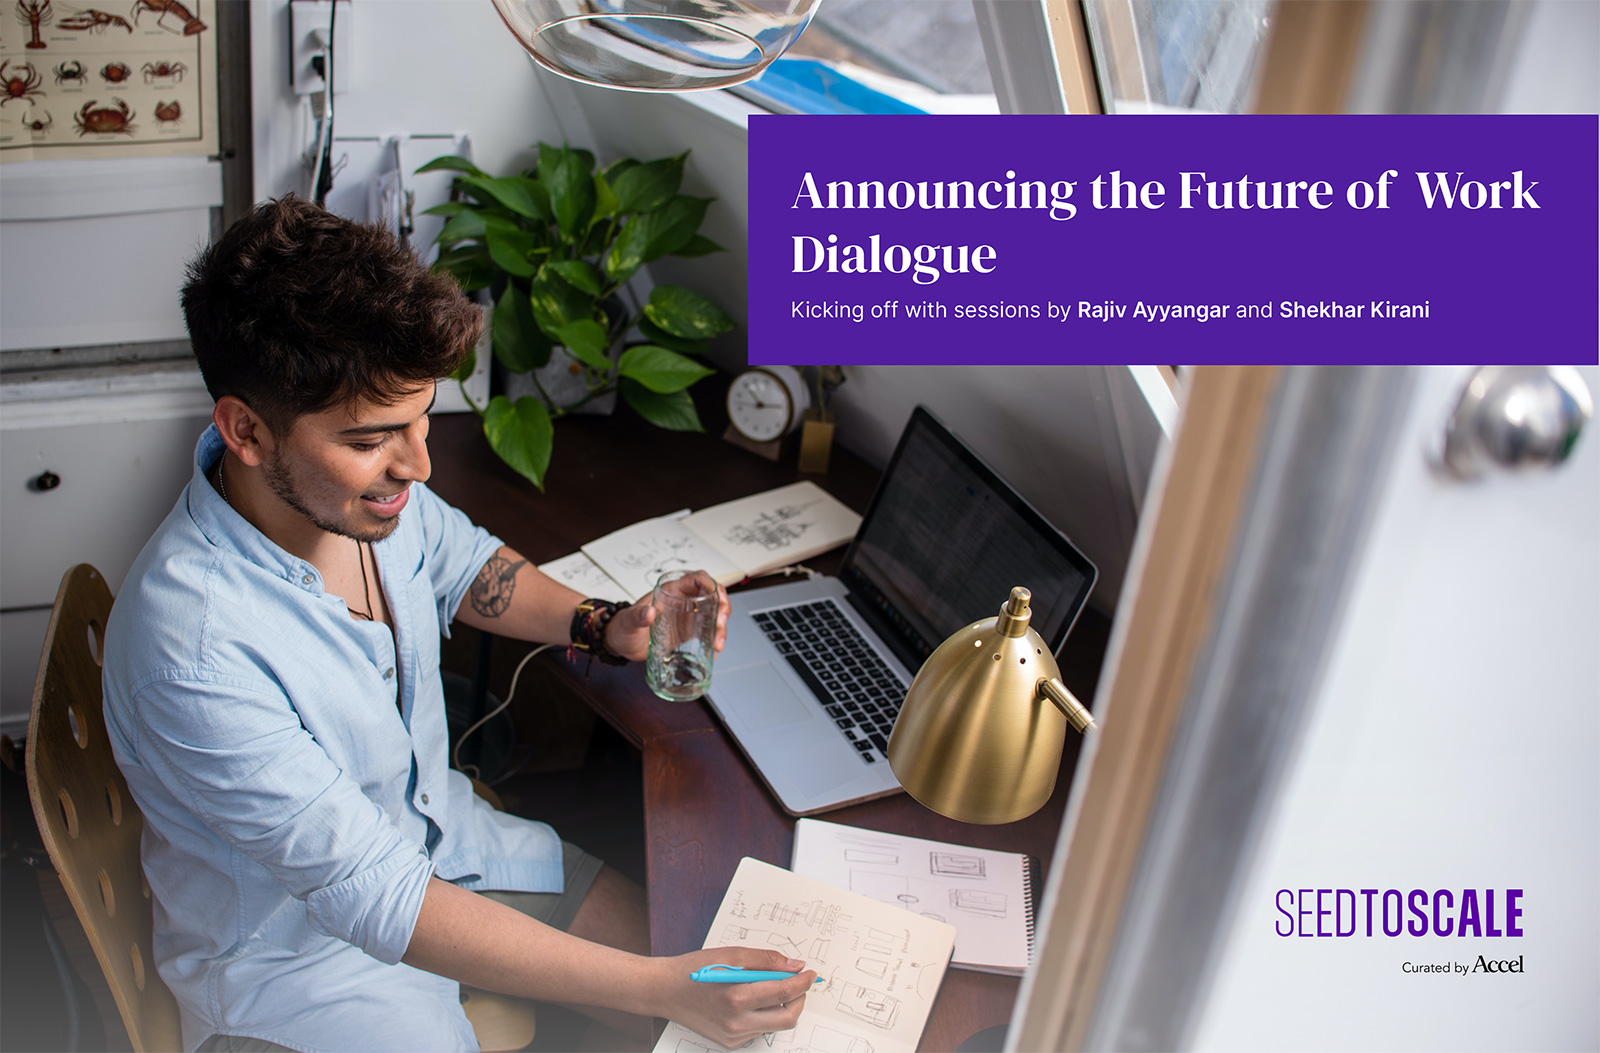 Announcing the Future of Work Dialogue